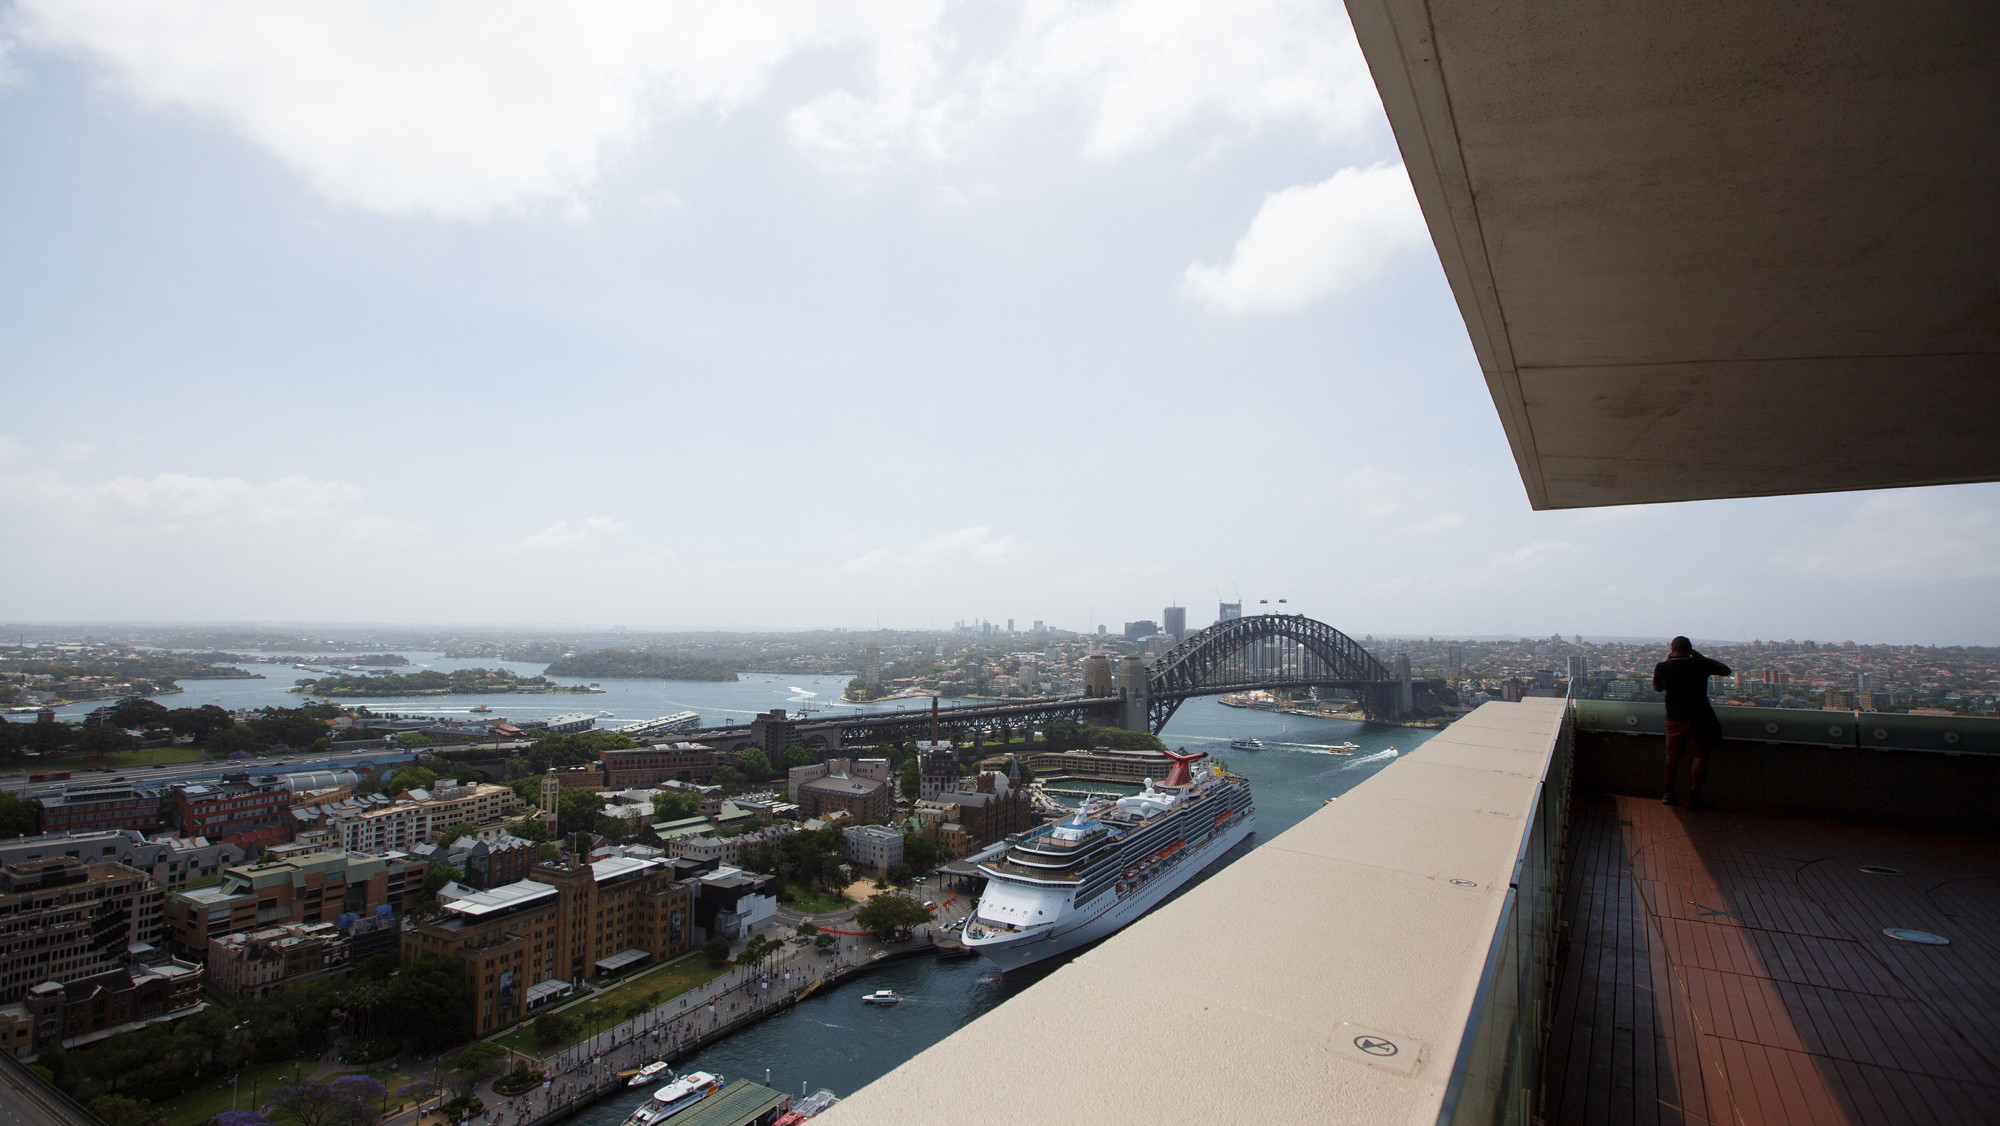 View of Harbour Bridge from rooftop balcony.